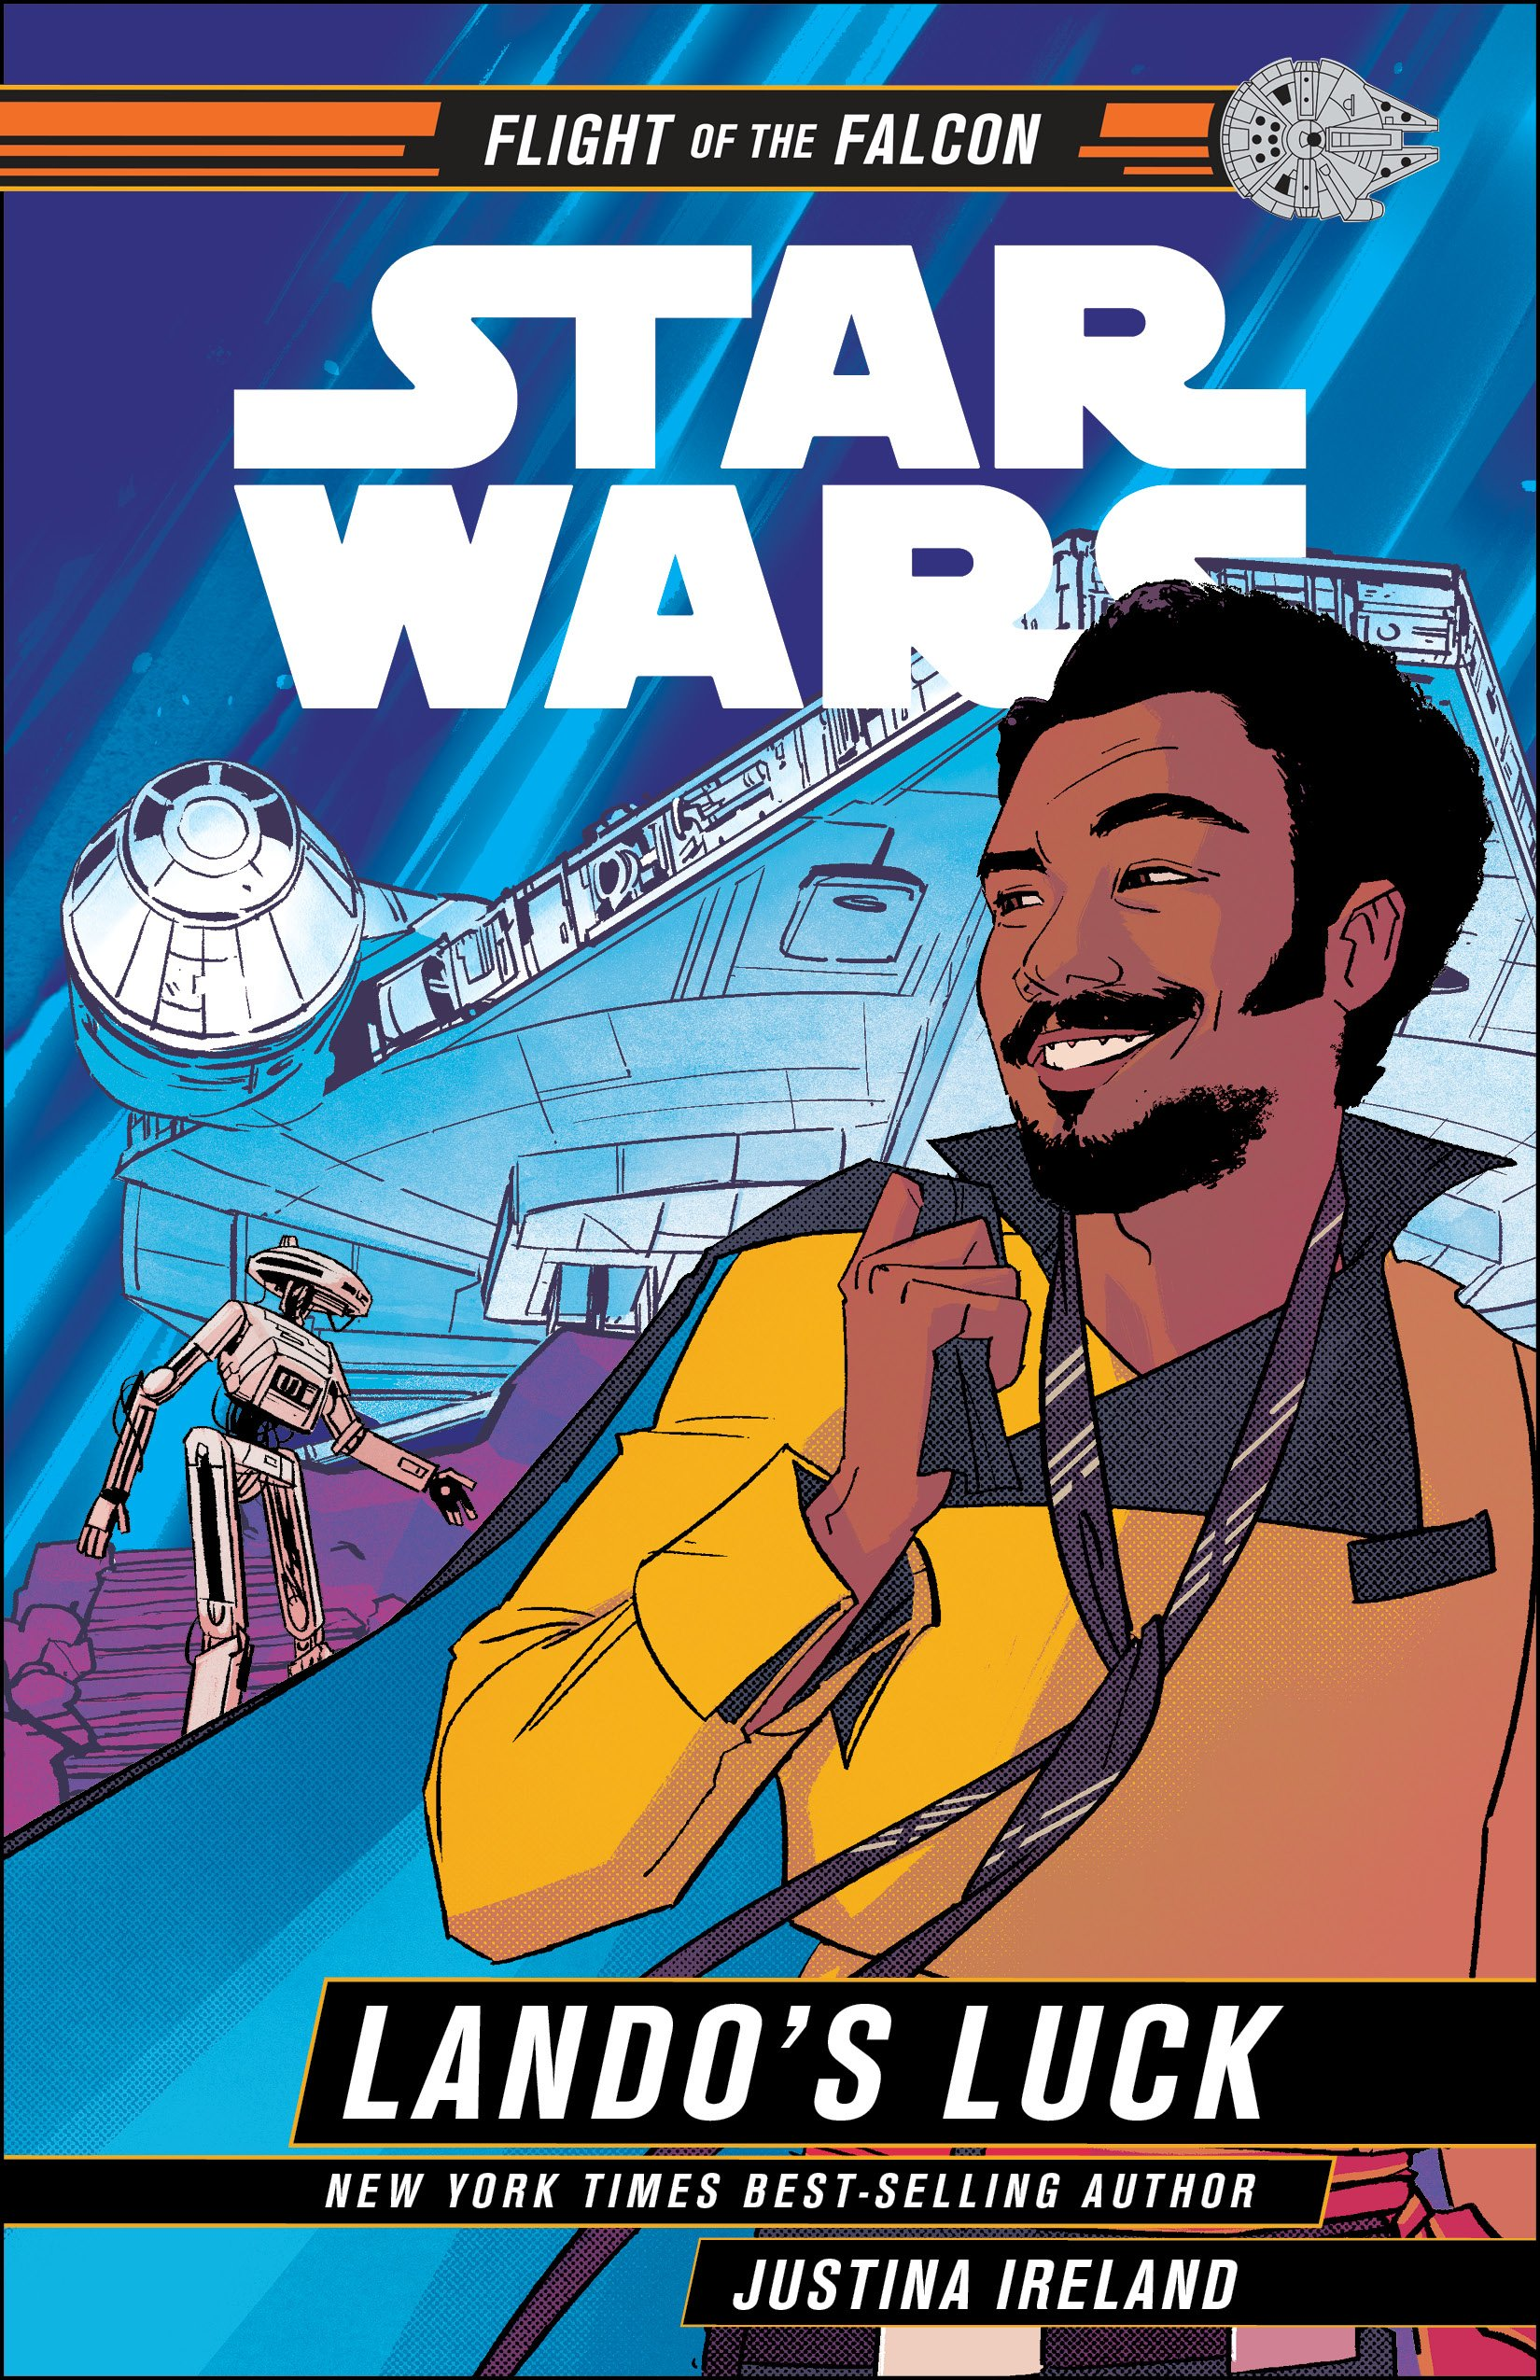 Download Star Wars: Lando's Luck (Star Wars: Flight of the Falcon) PDF